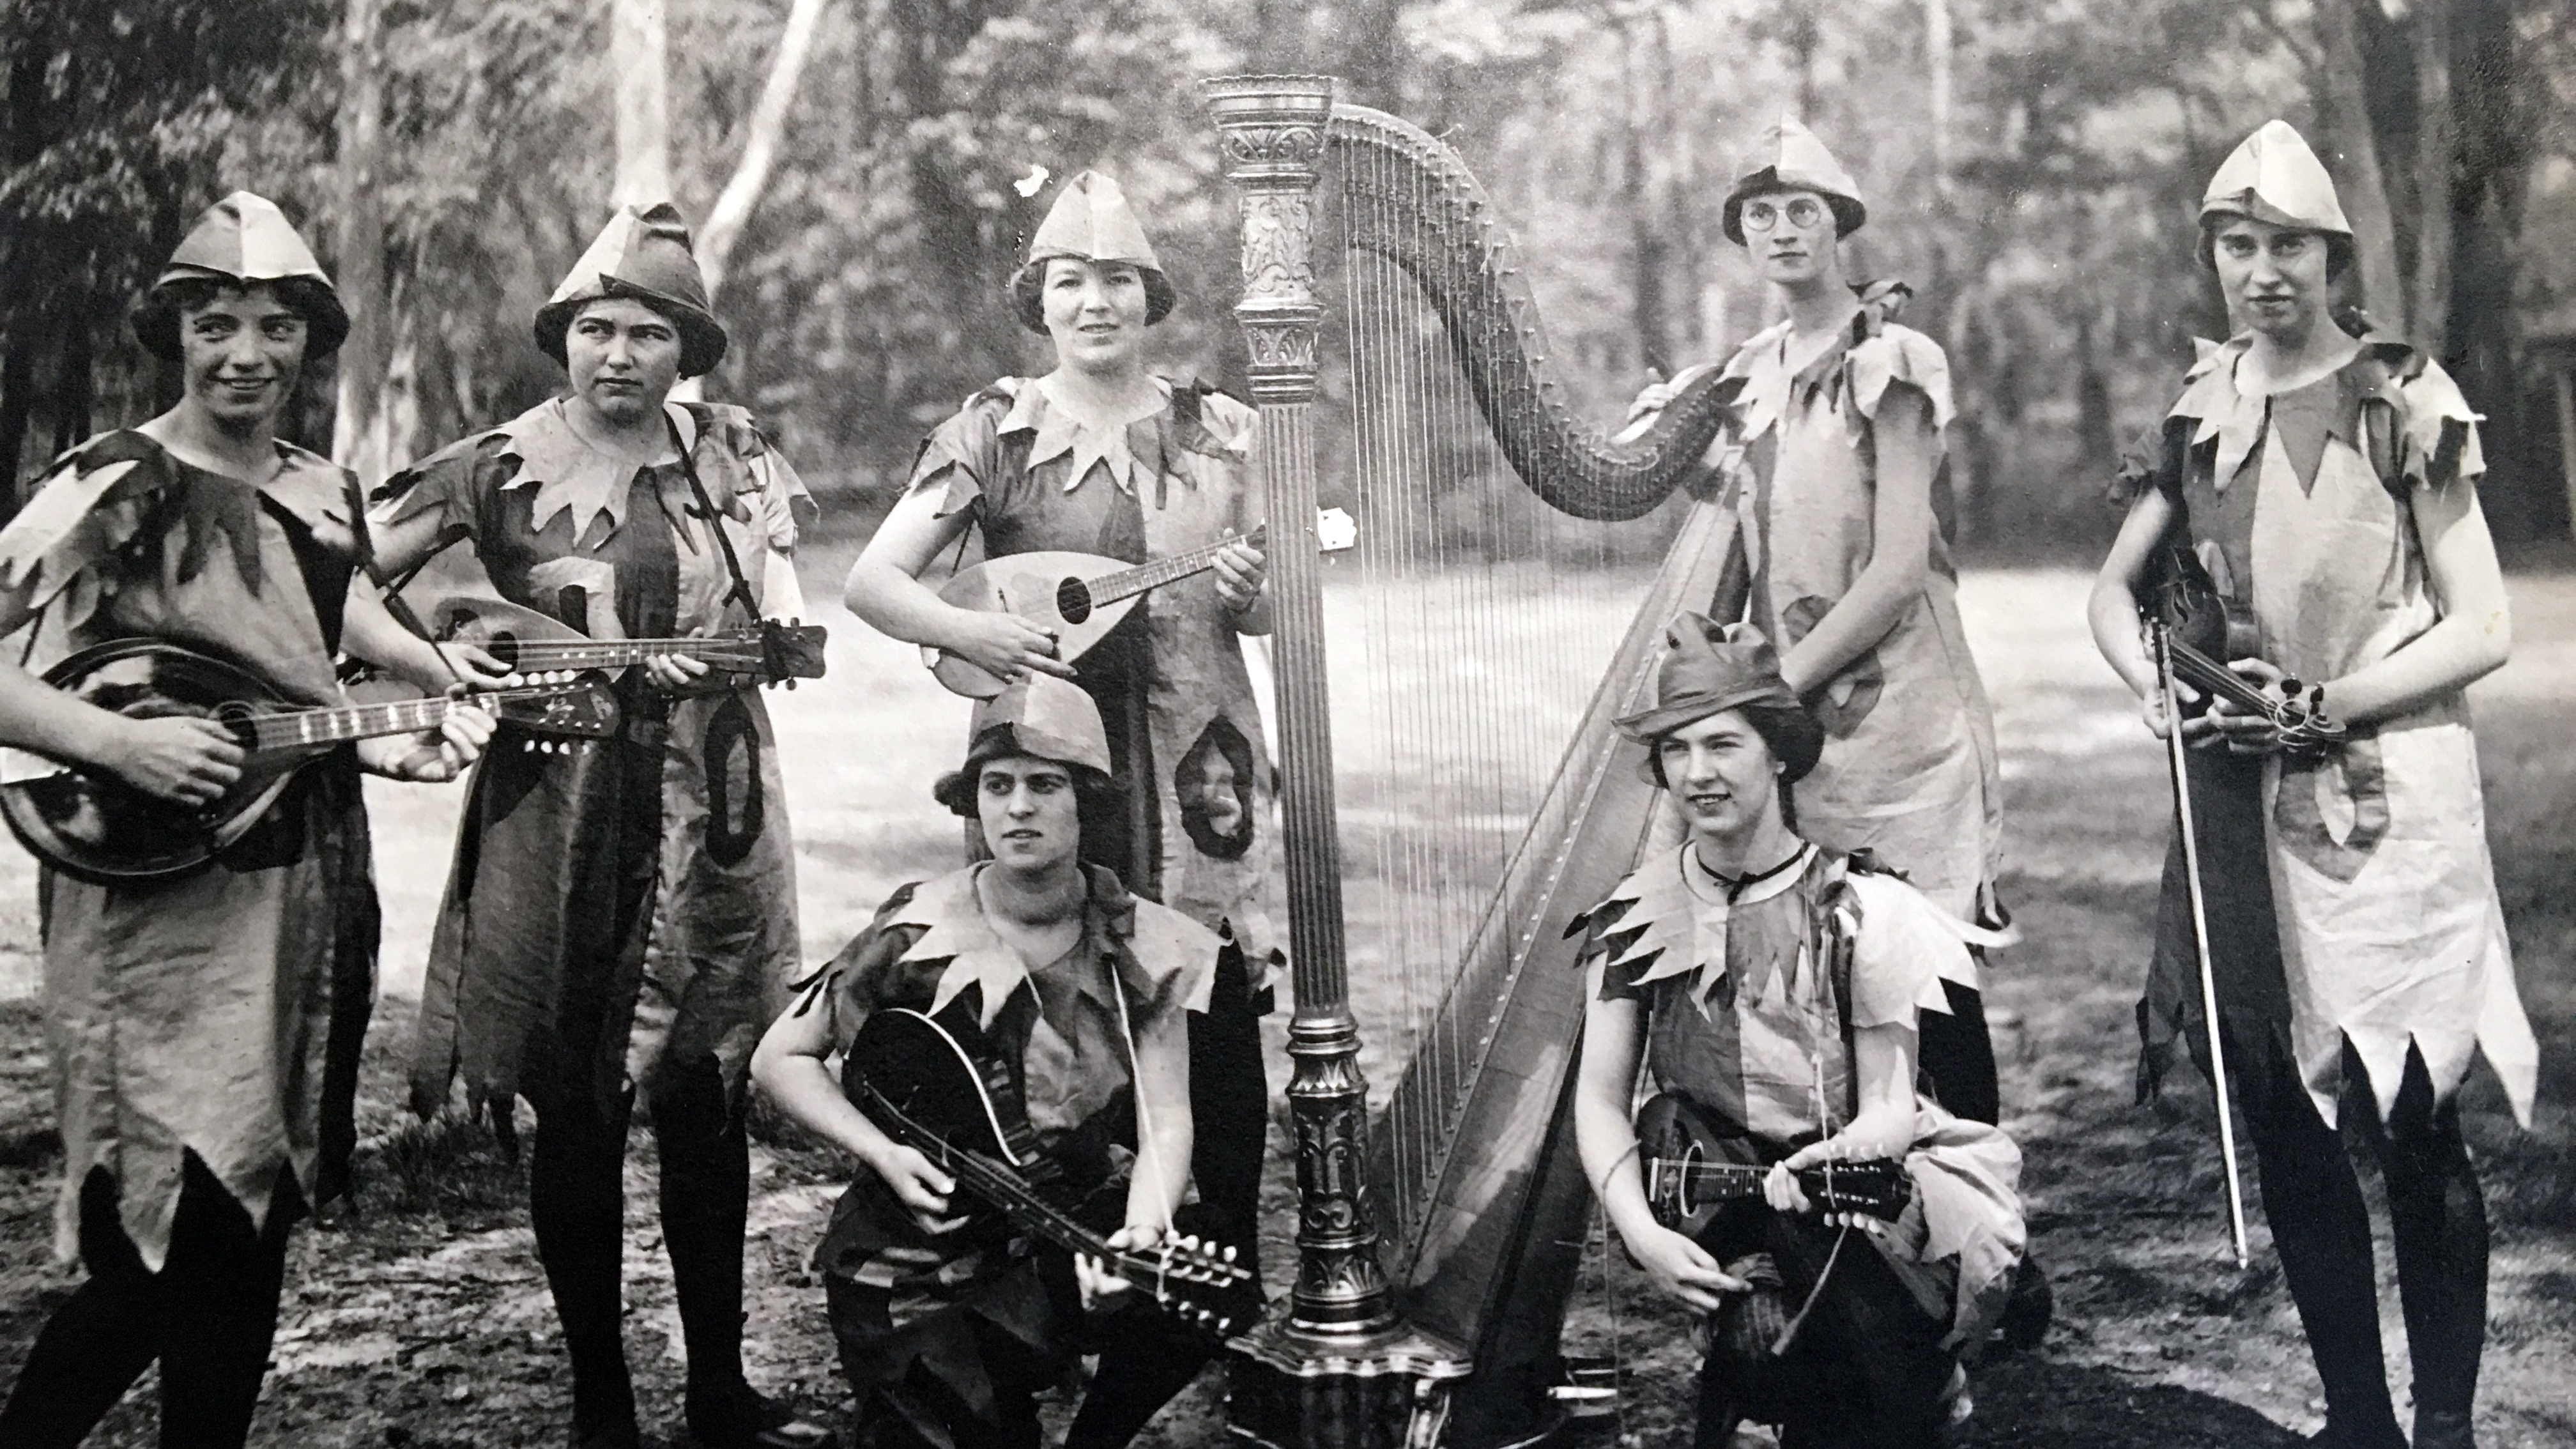 May Day minstrels, 1921